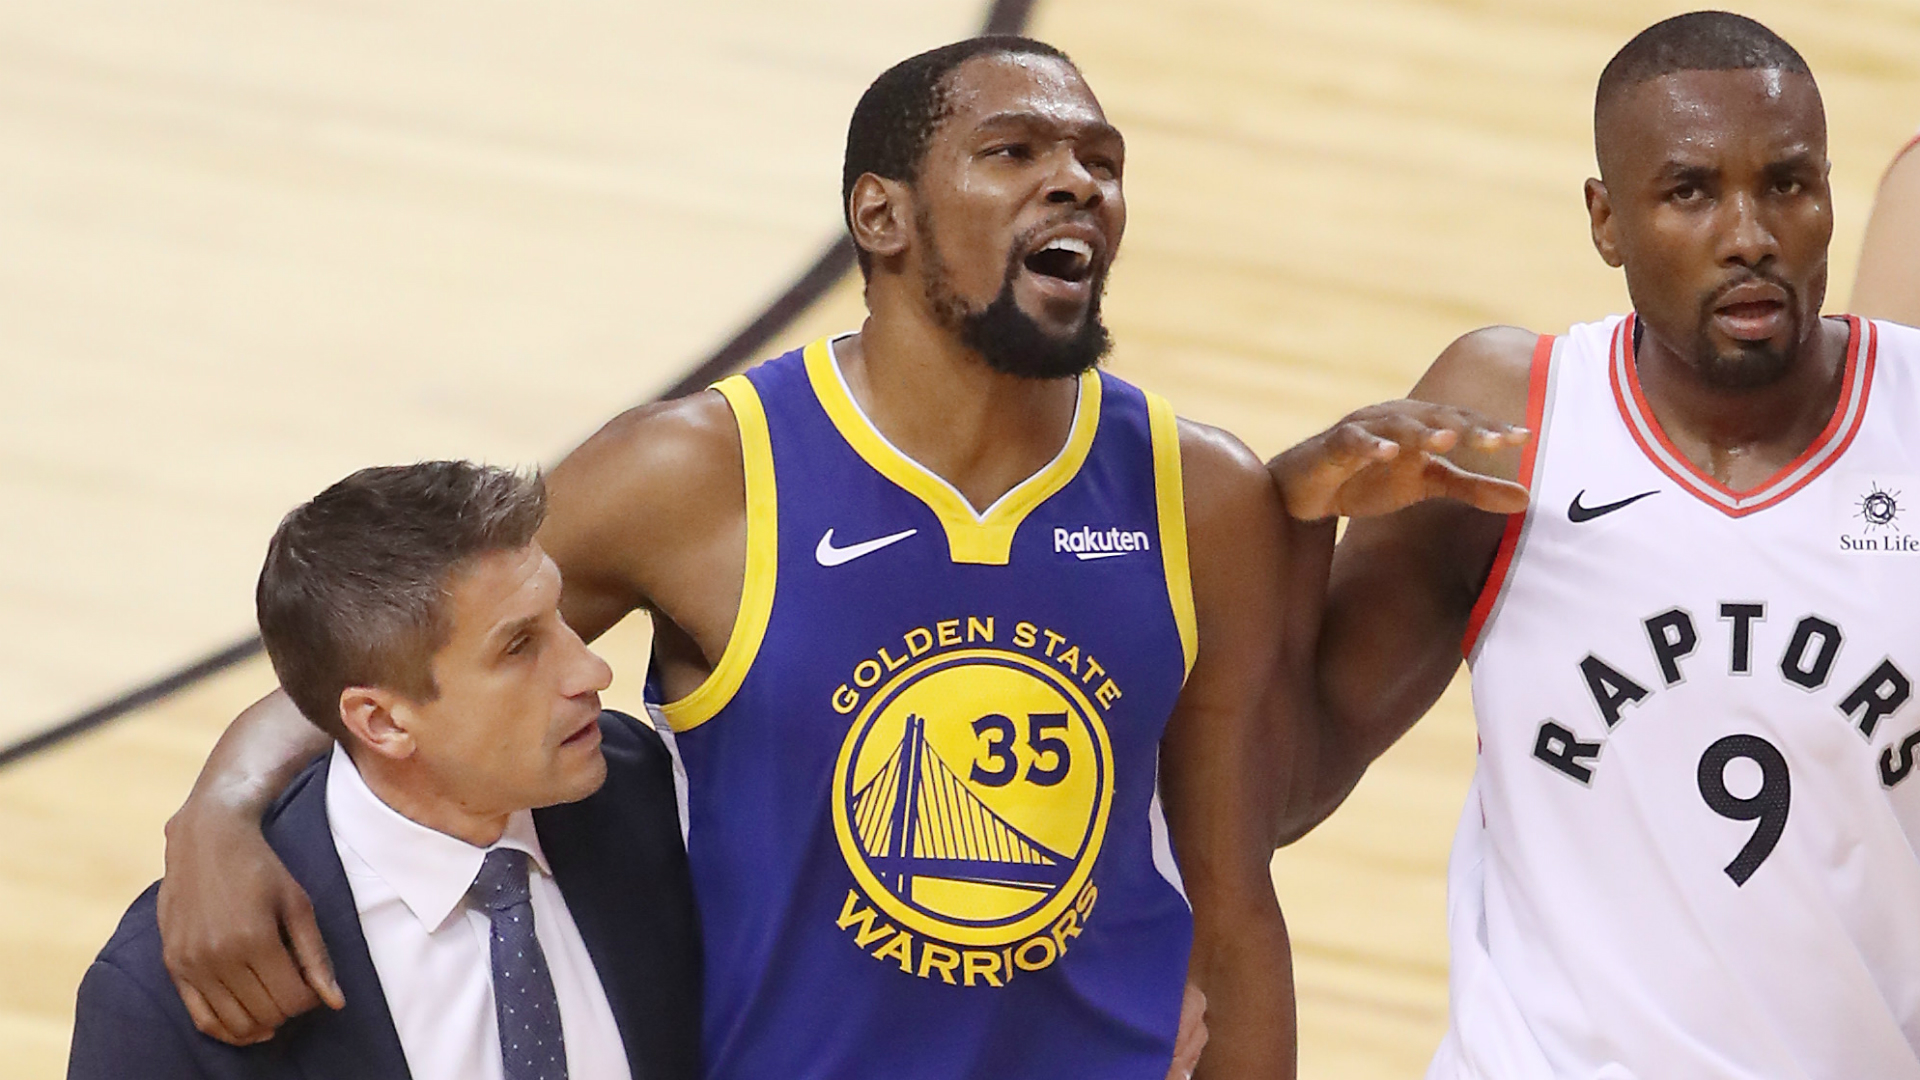 Golden State Warriors star Kevin Durant confirmed he suffered a ruptured Achilles in Game 5 of the NBA Finals against the Toronto Raptors.